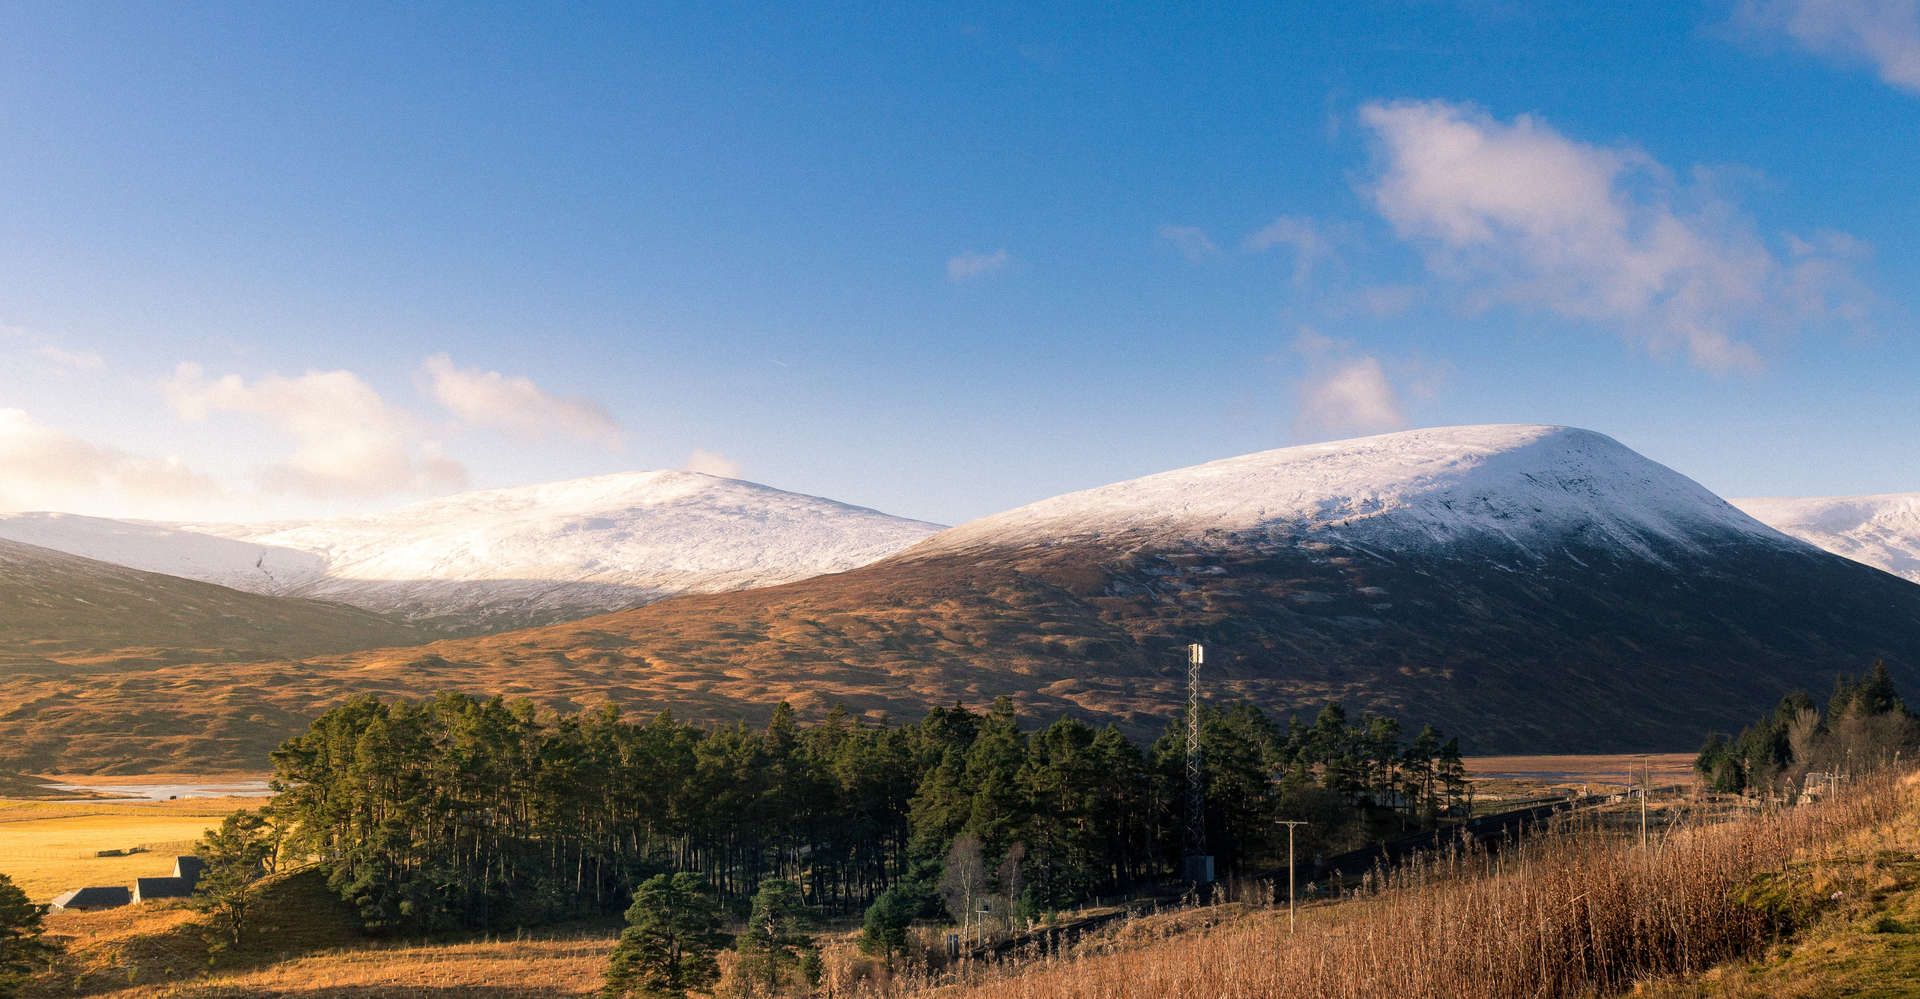 snowy mountains in perthshire scotland with blue sky